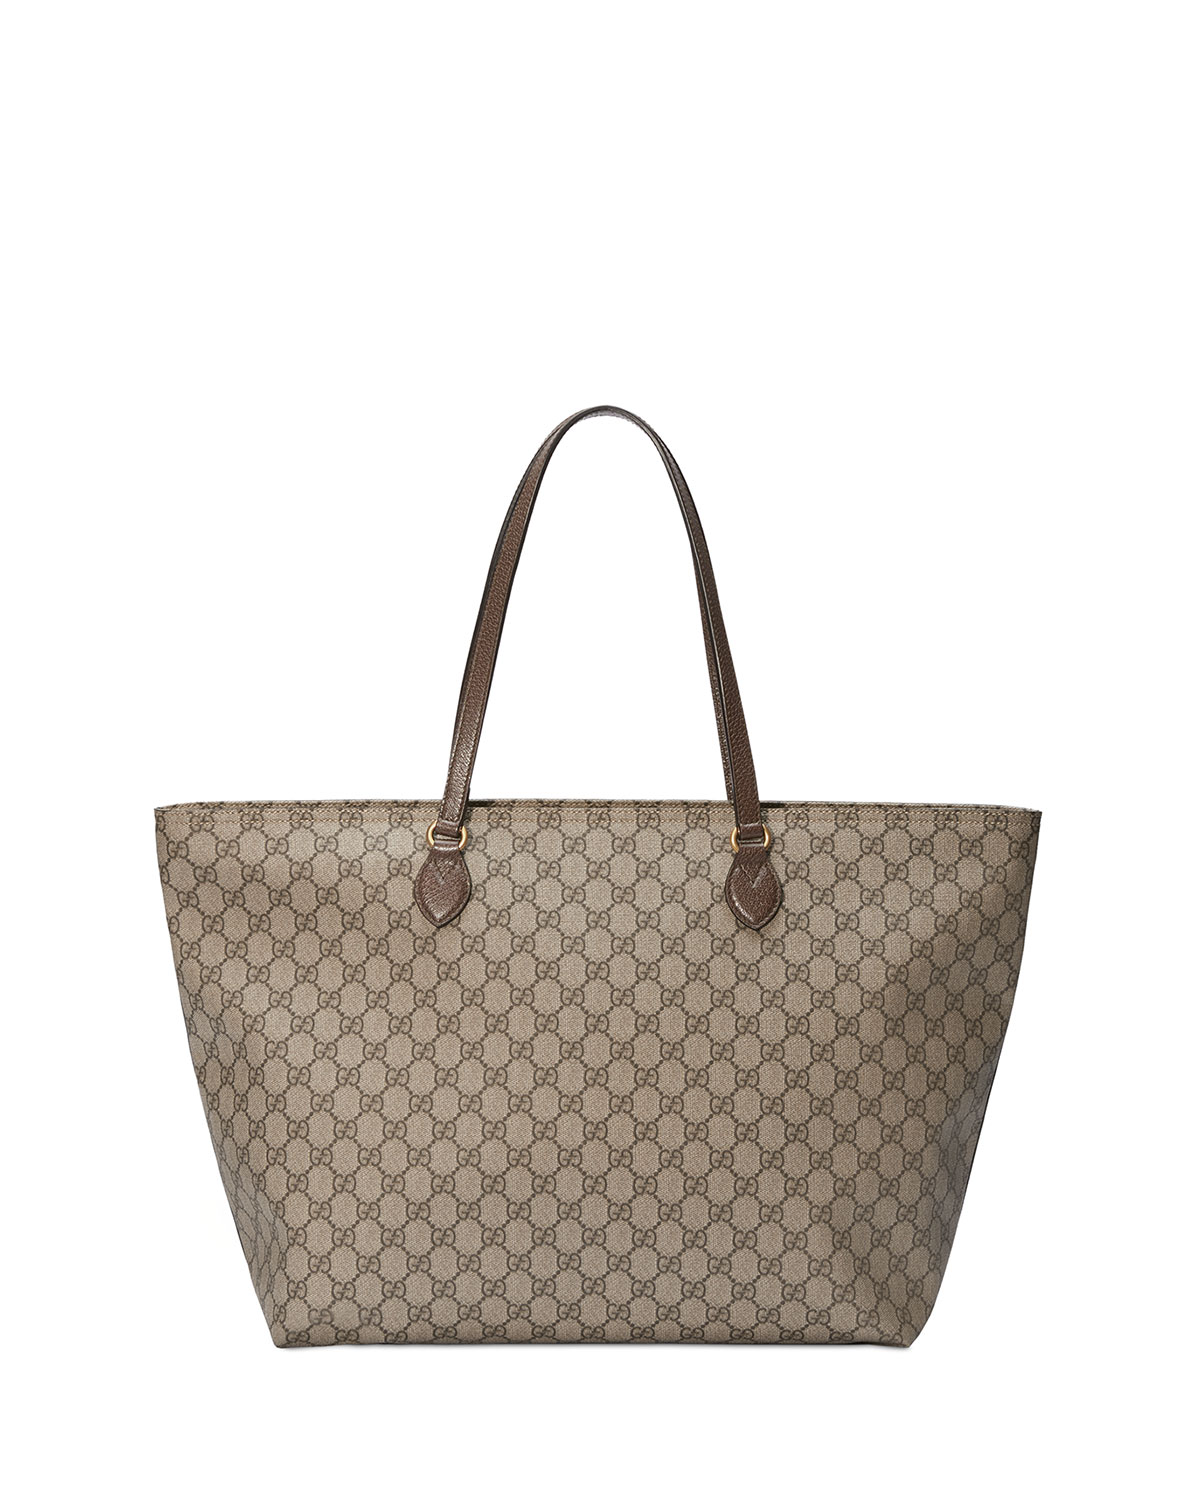 7e94e4f04bd5 Gucci Ophidia Medium Soft GG Supreme Canvas Tote Bag | Neiman Marcus